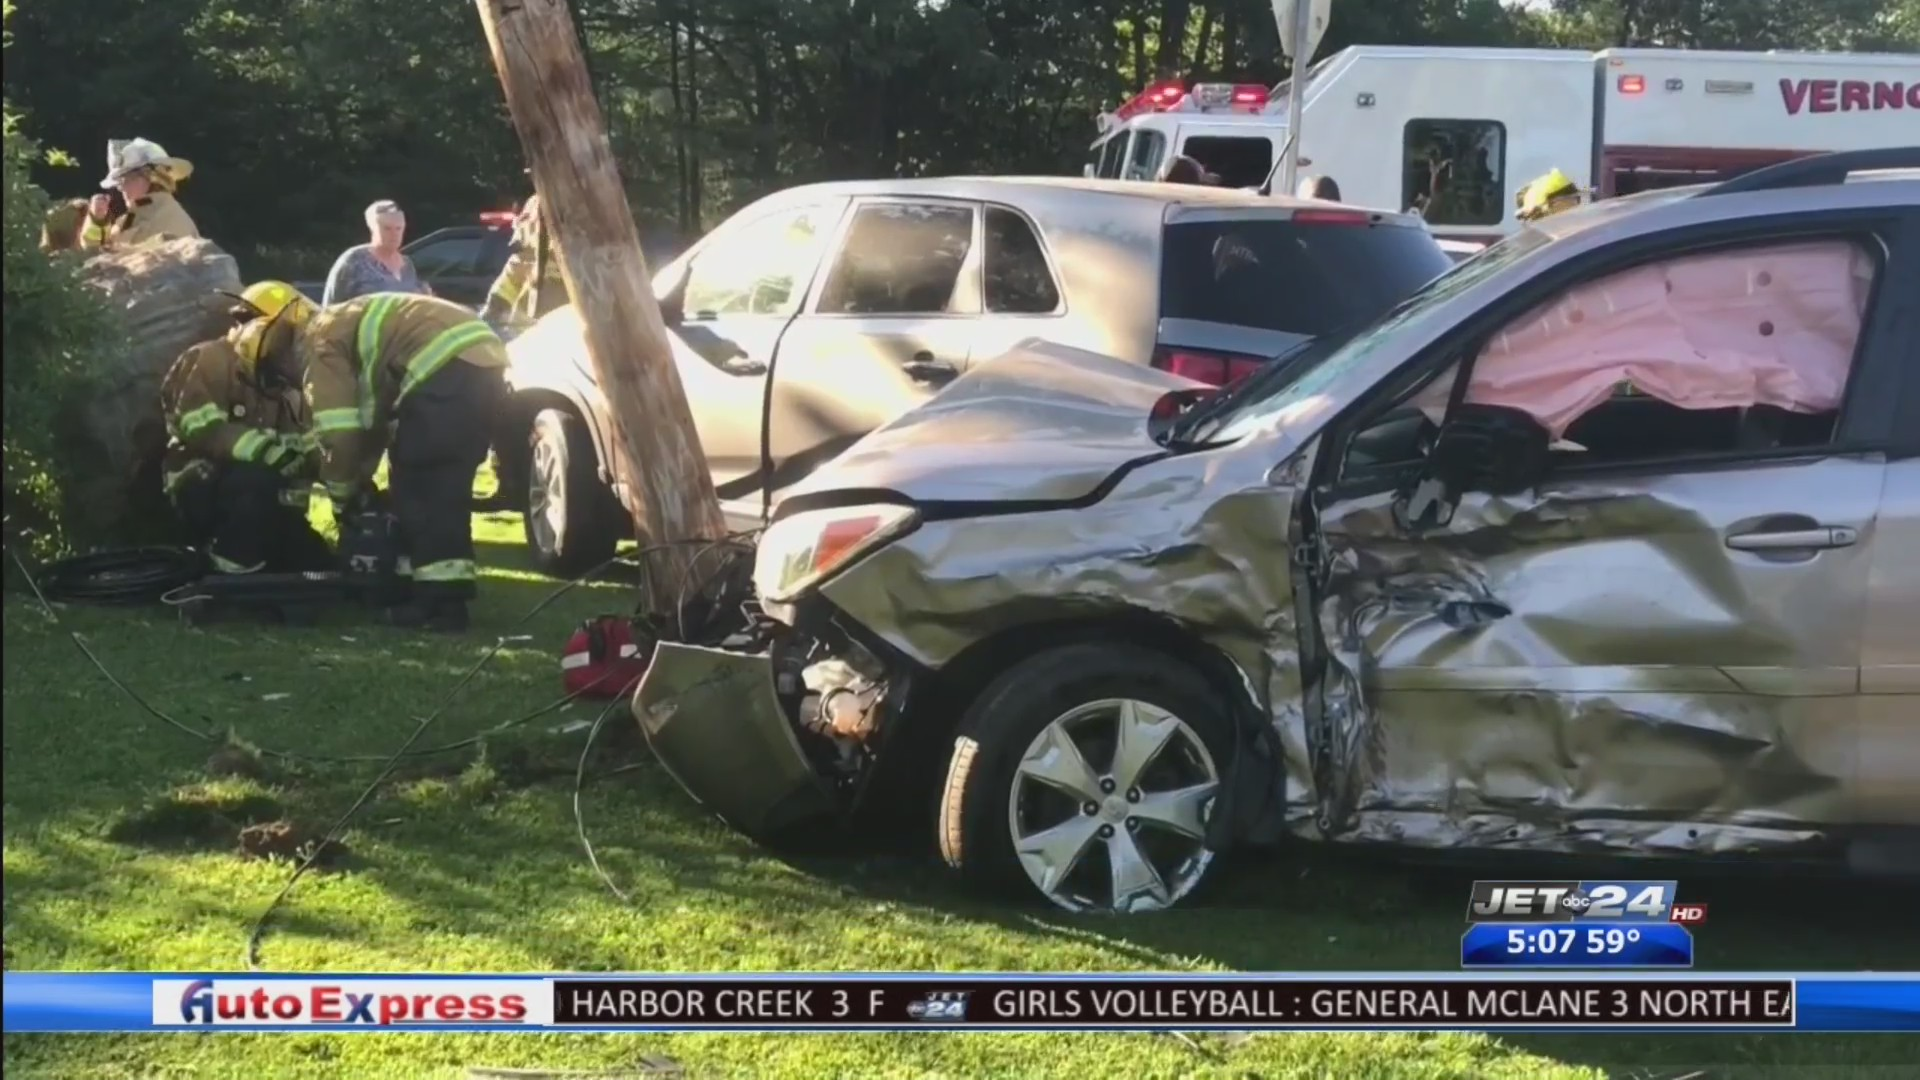 Three people injured in a three vehicle accident in Vernon